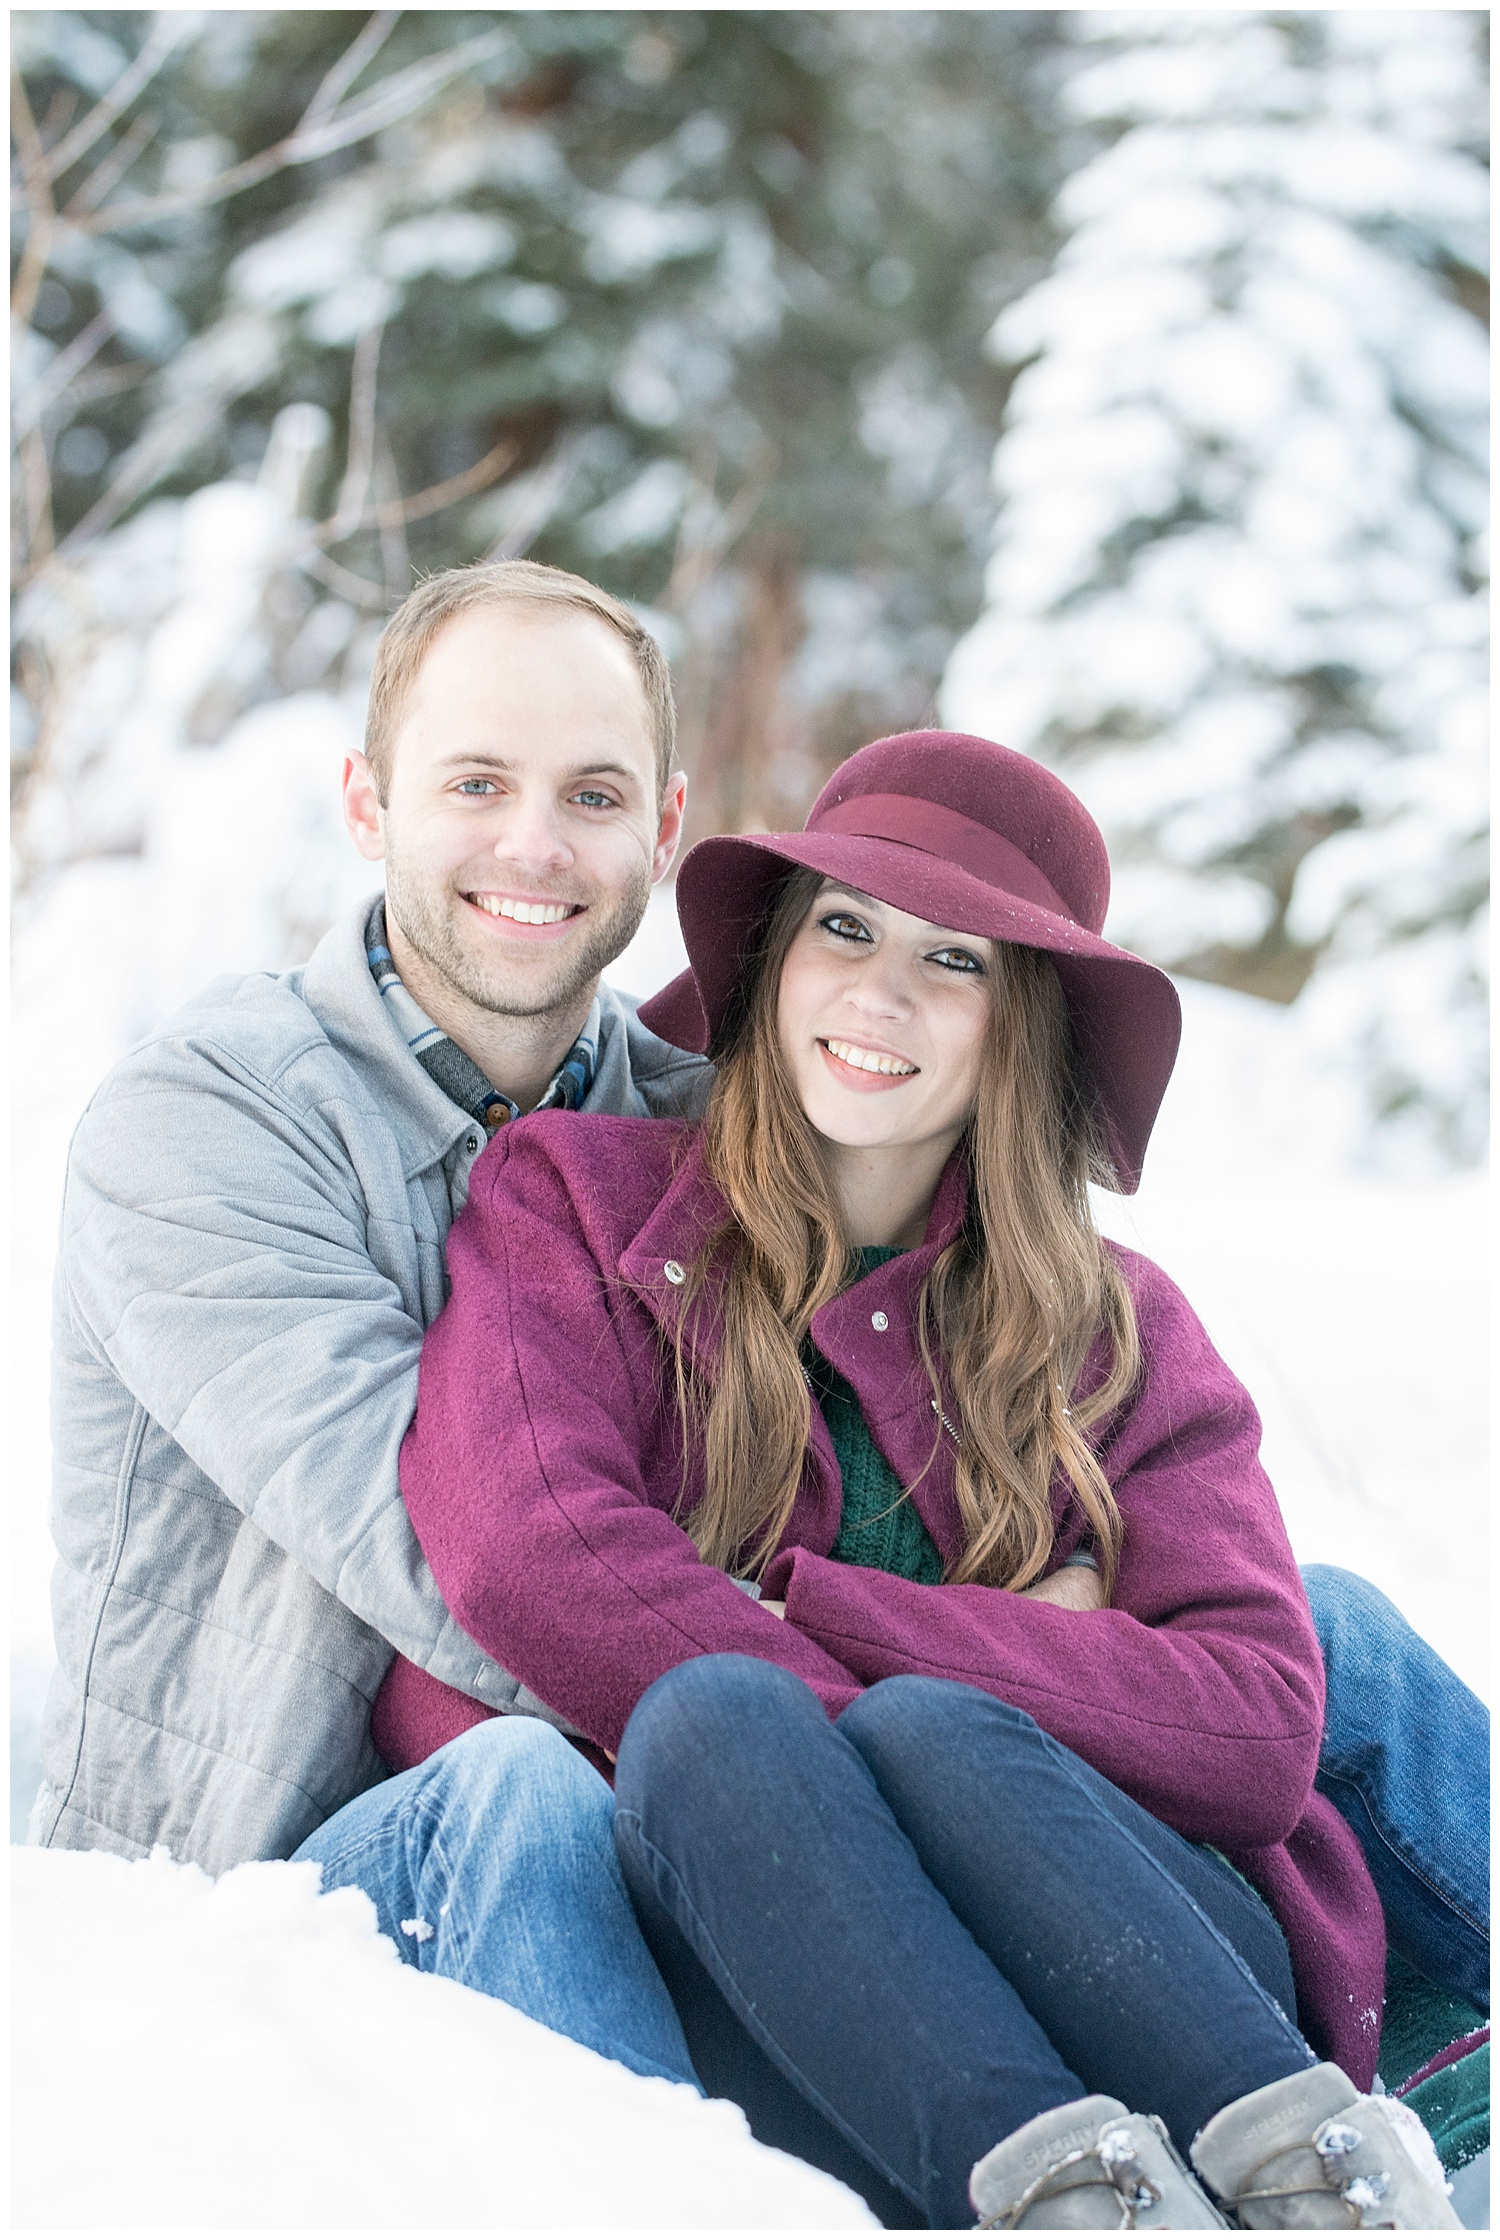 Breckenridge_Colorado_Engagement_Photographer_Ski_Resort_Mountain_Town_Photography_Engagement_Photos_009.jpg